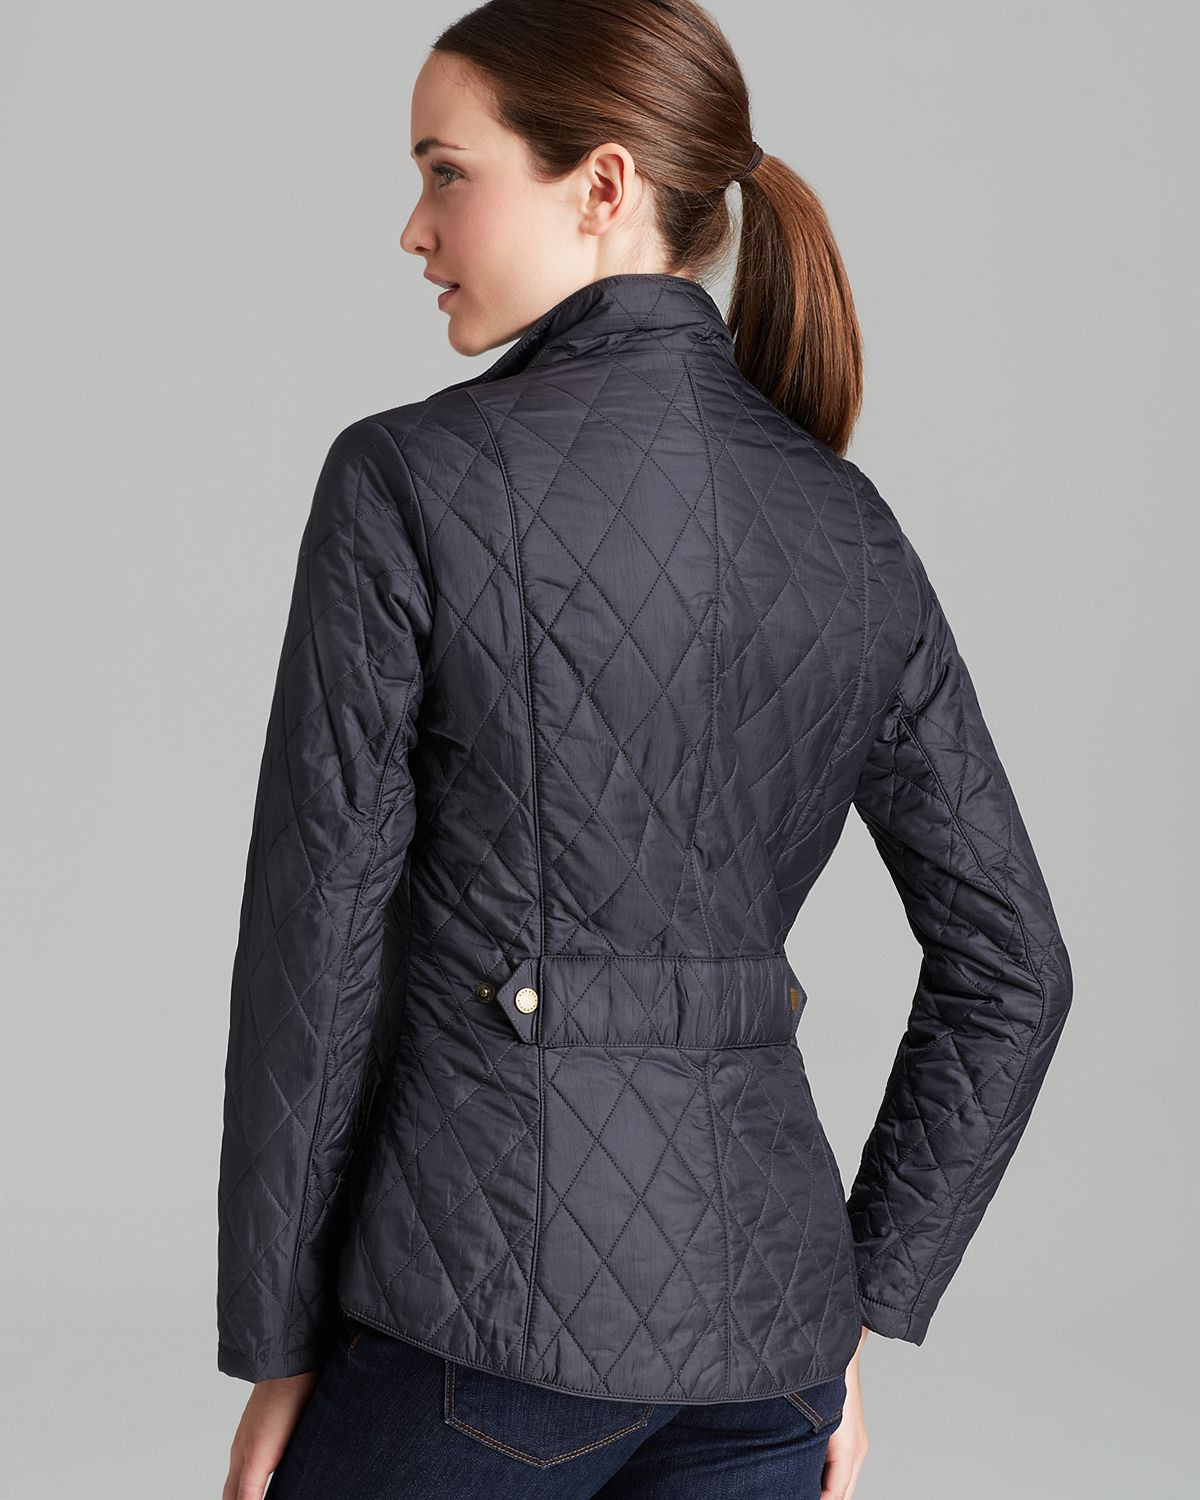 Lyst - Barbour Flyweight Cavalry Jacket in Blue : barbour polarquilt quilted jacket - Adamdwight.com